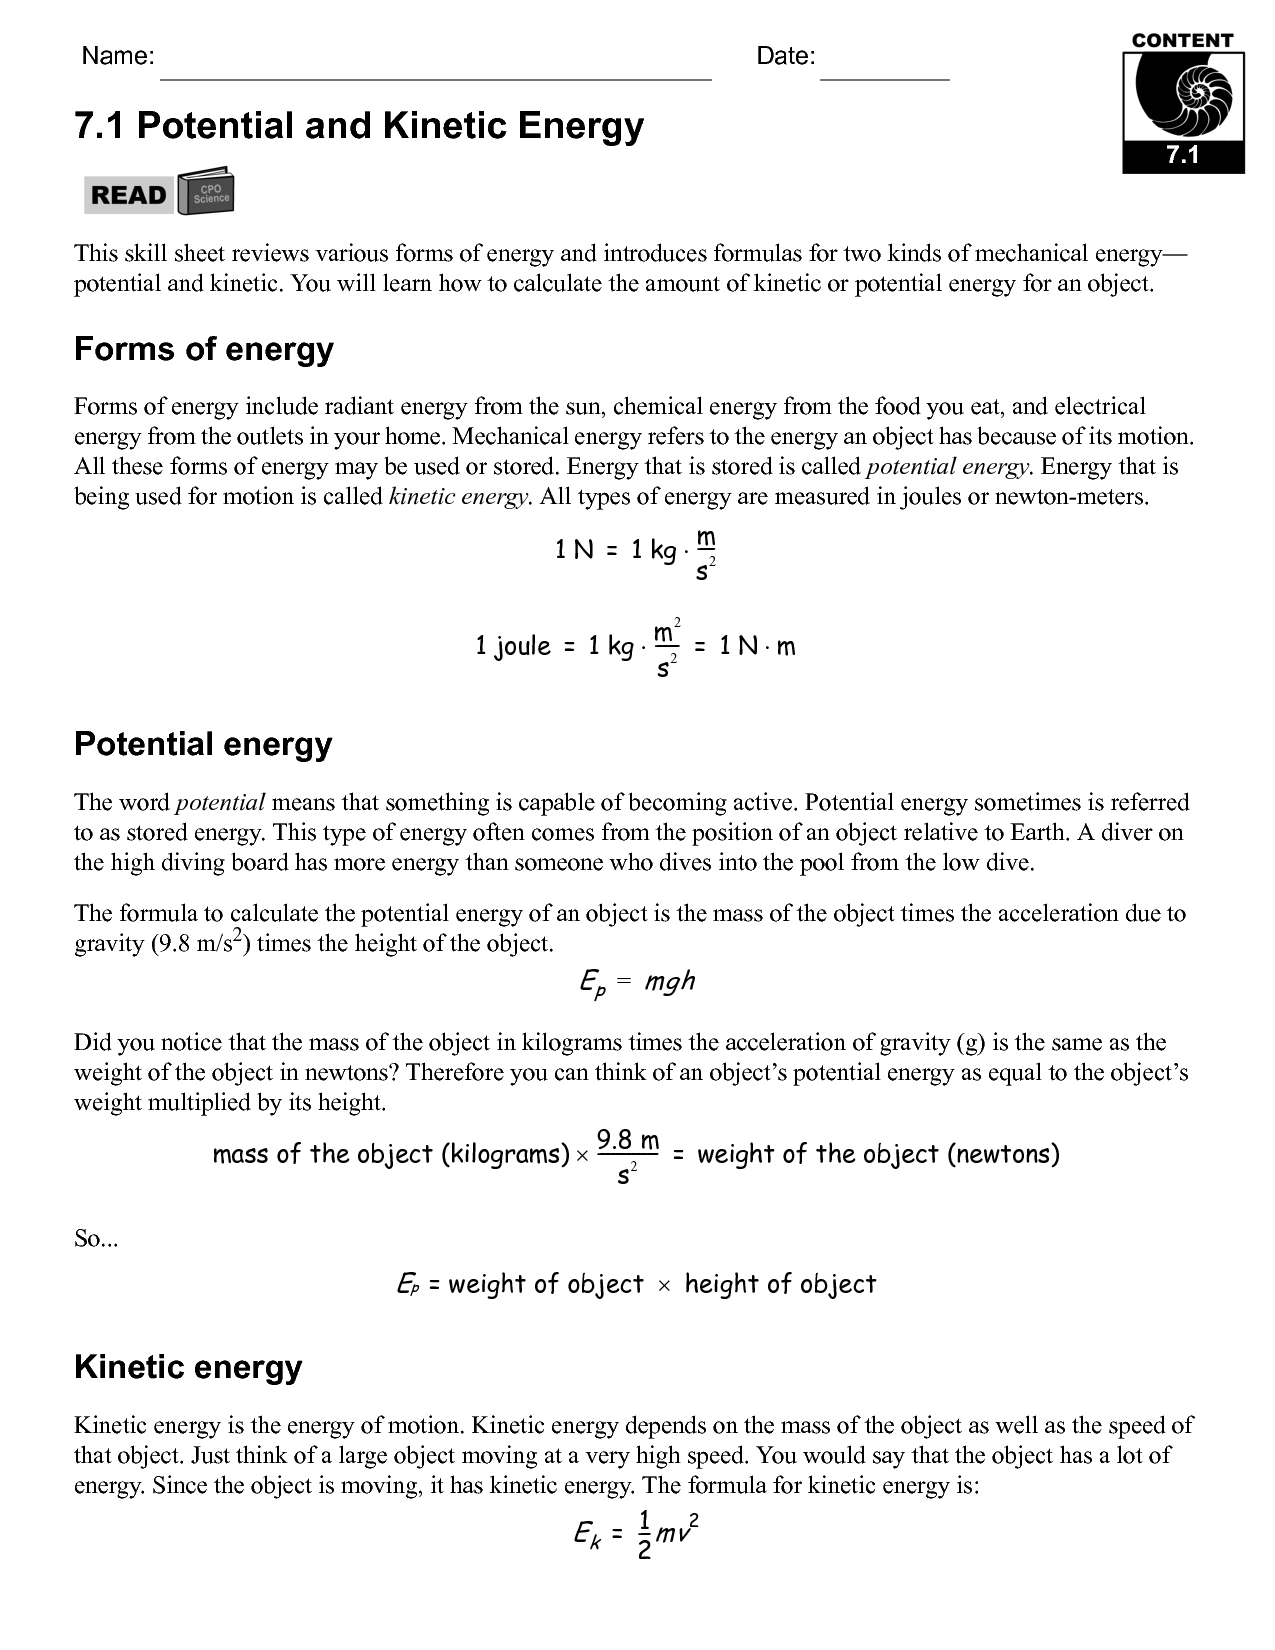 Answers To Worksheet Kiic And Potential Energy Problems